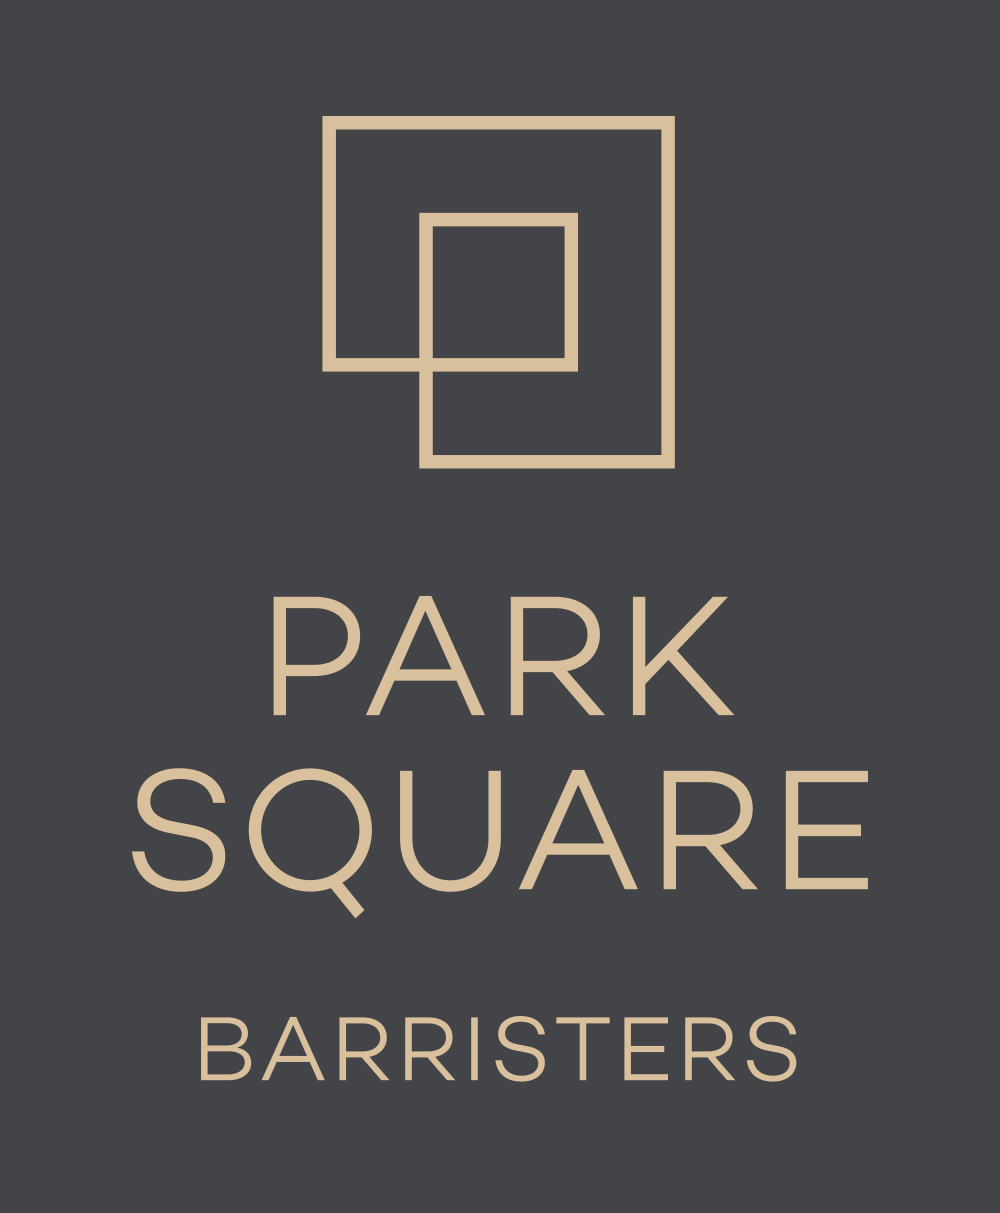 Park Square Barristers